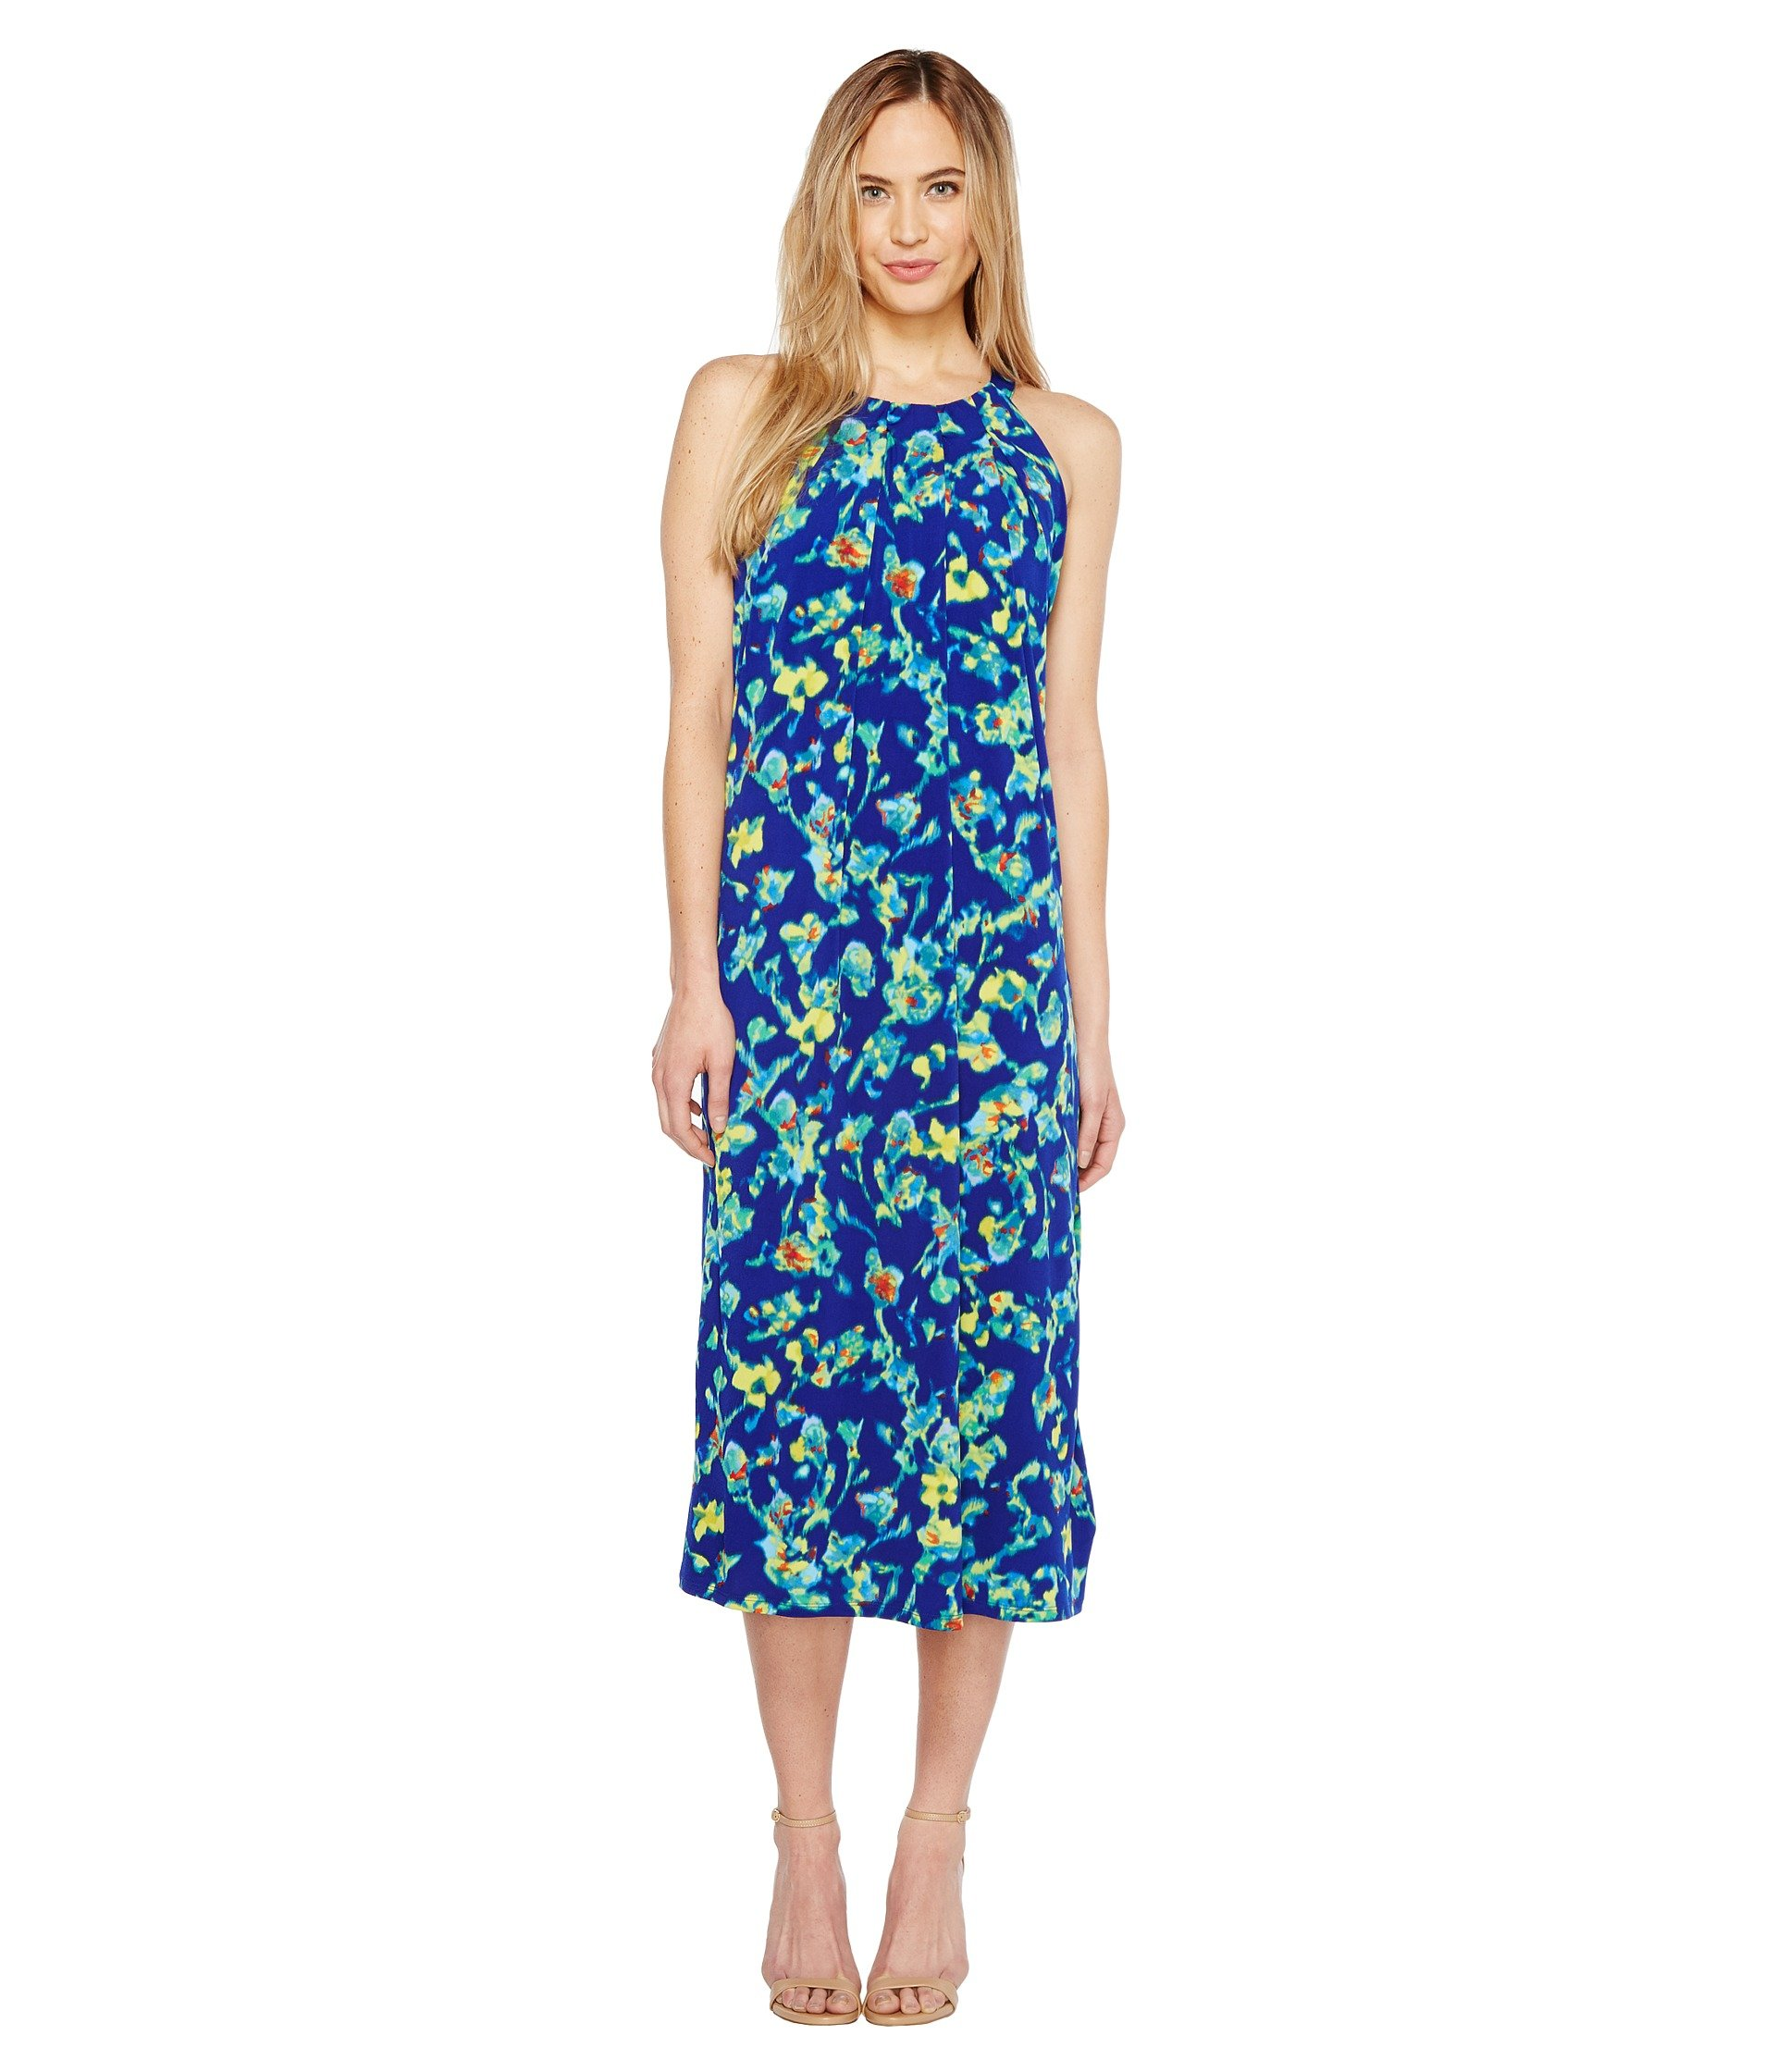 ELLEN TRACY Halter Midi Dress, Island Floral